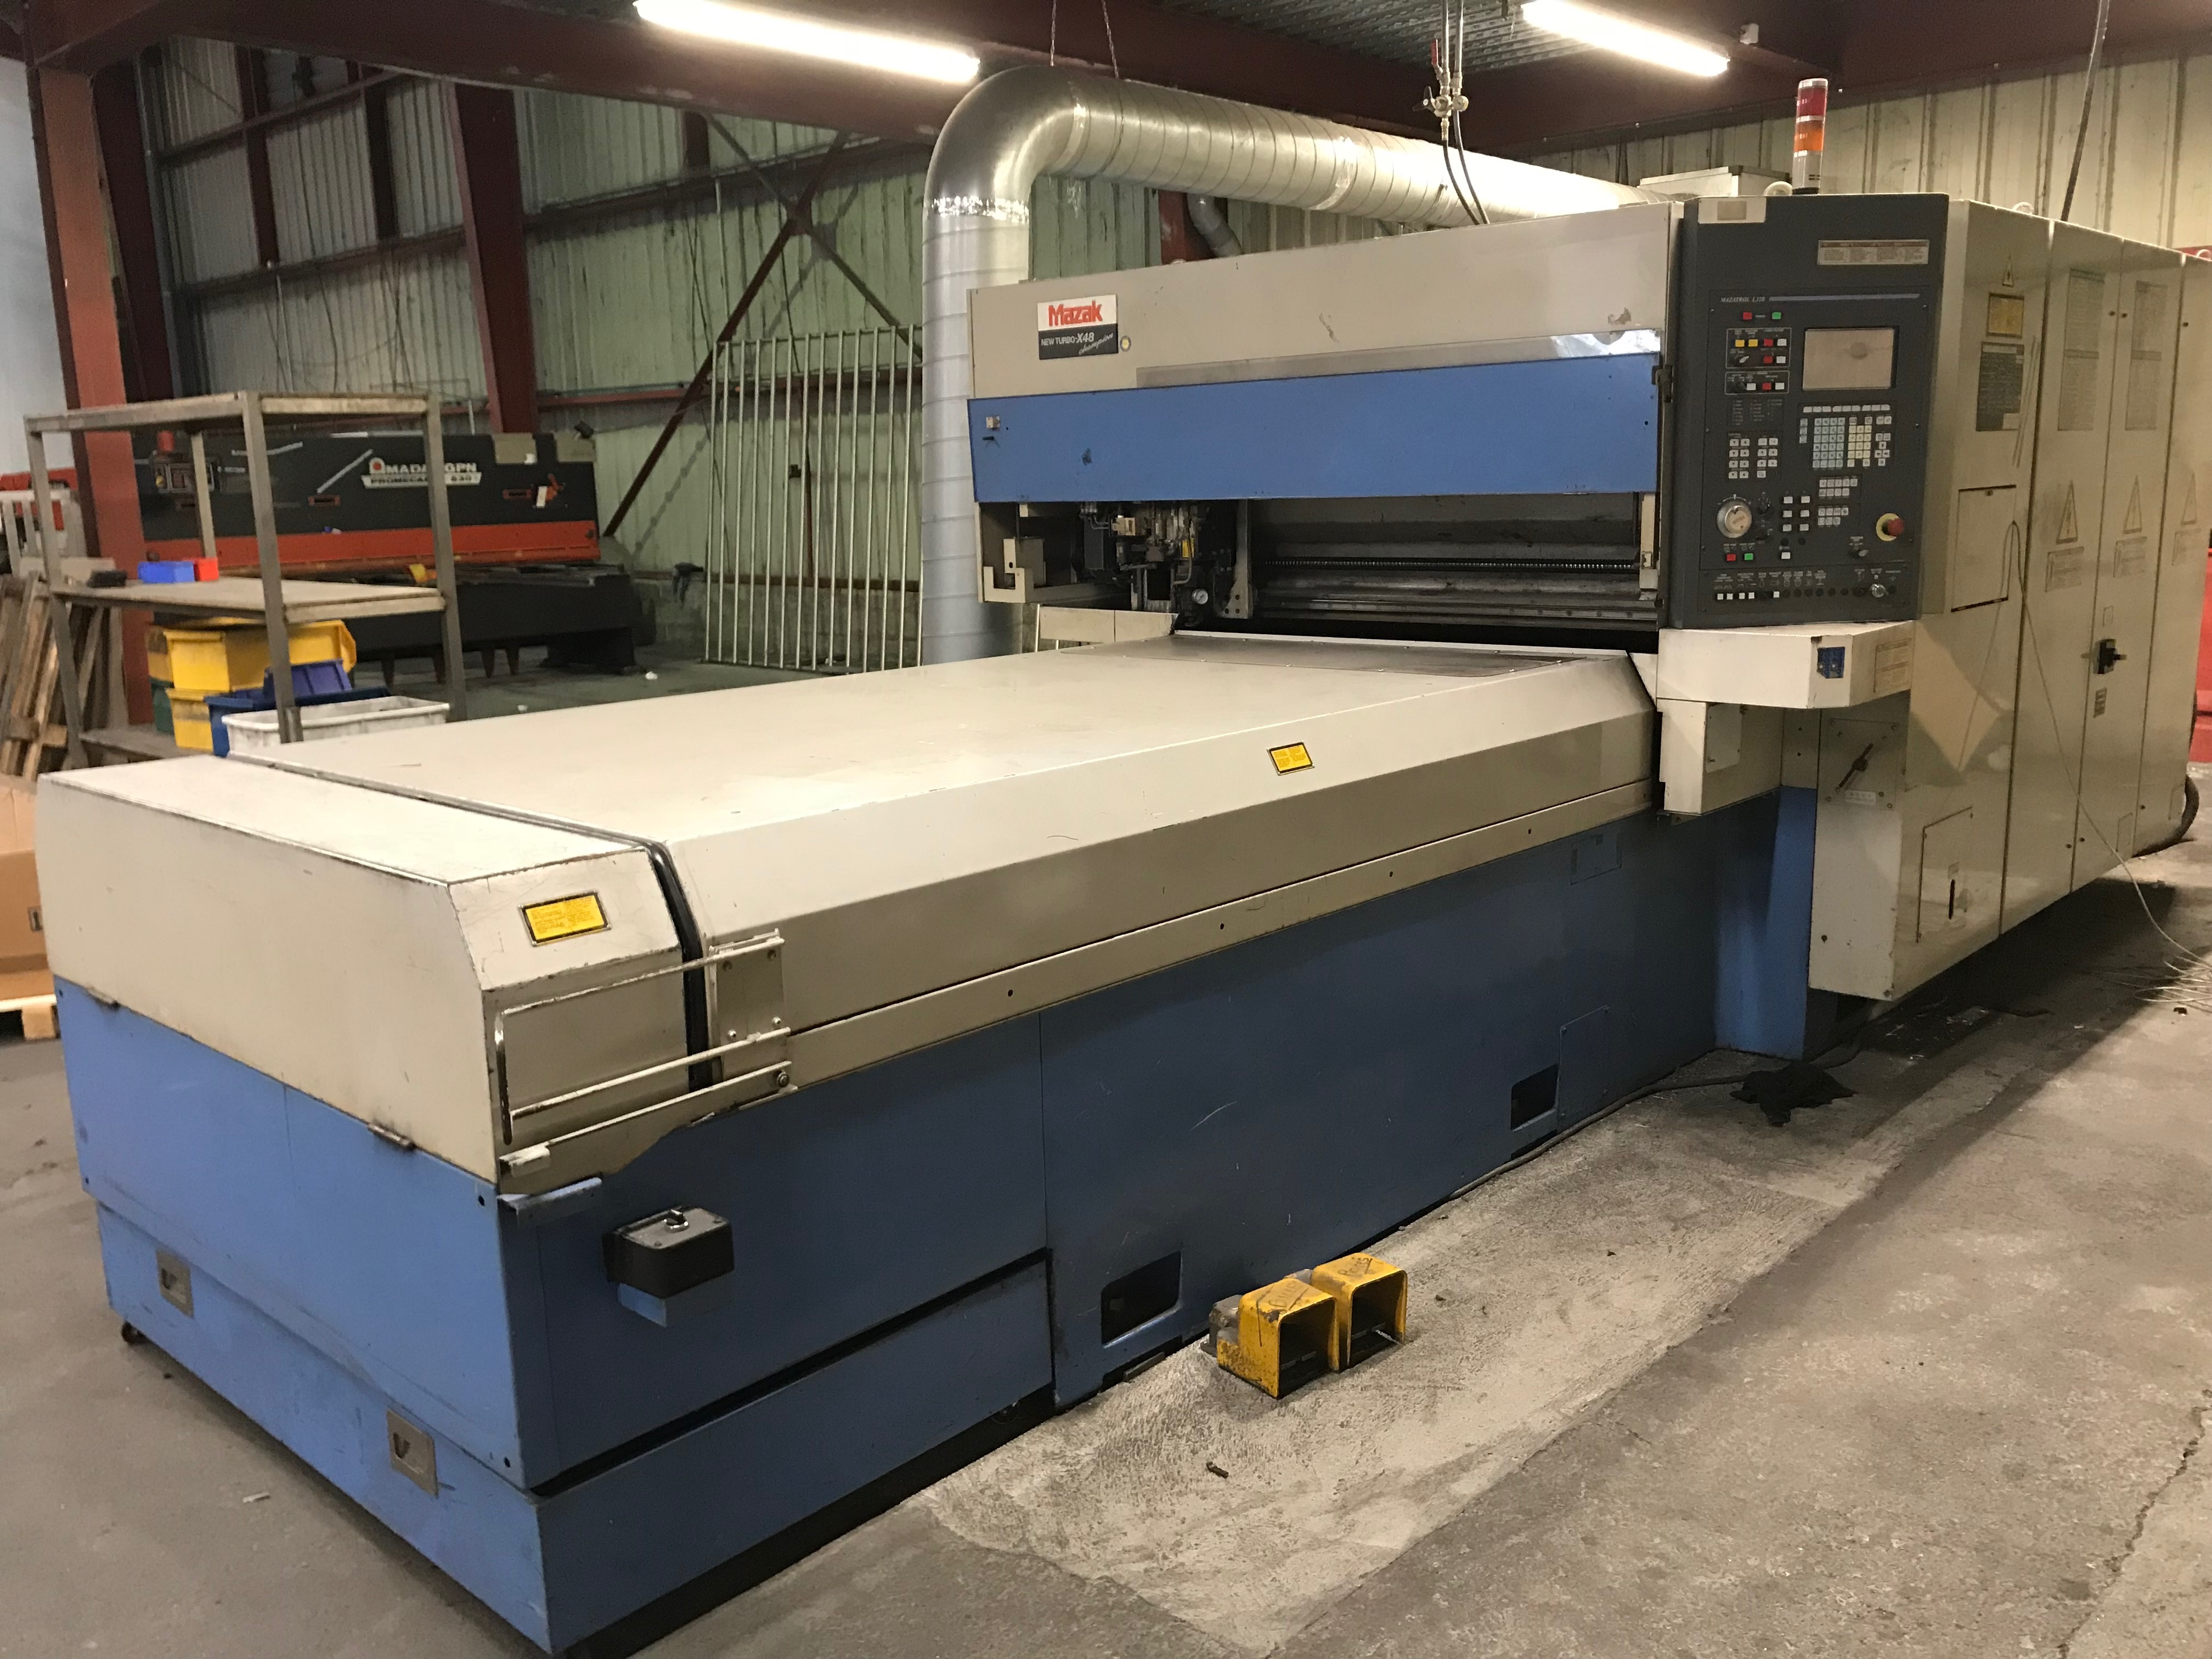 Mazak NTX 48 CHAMPION laser cutting machine - Exapro